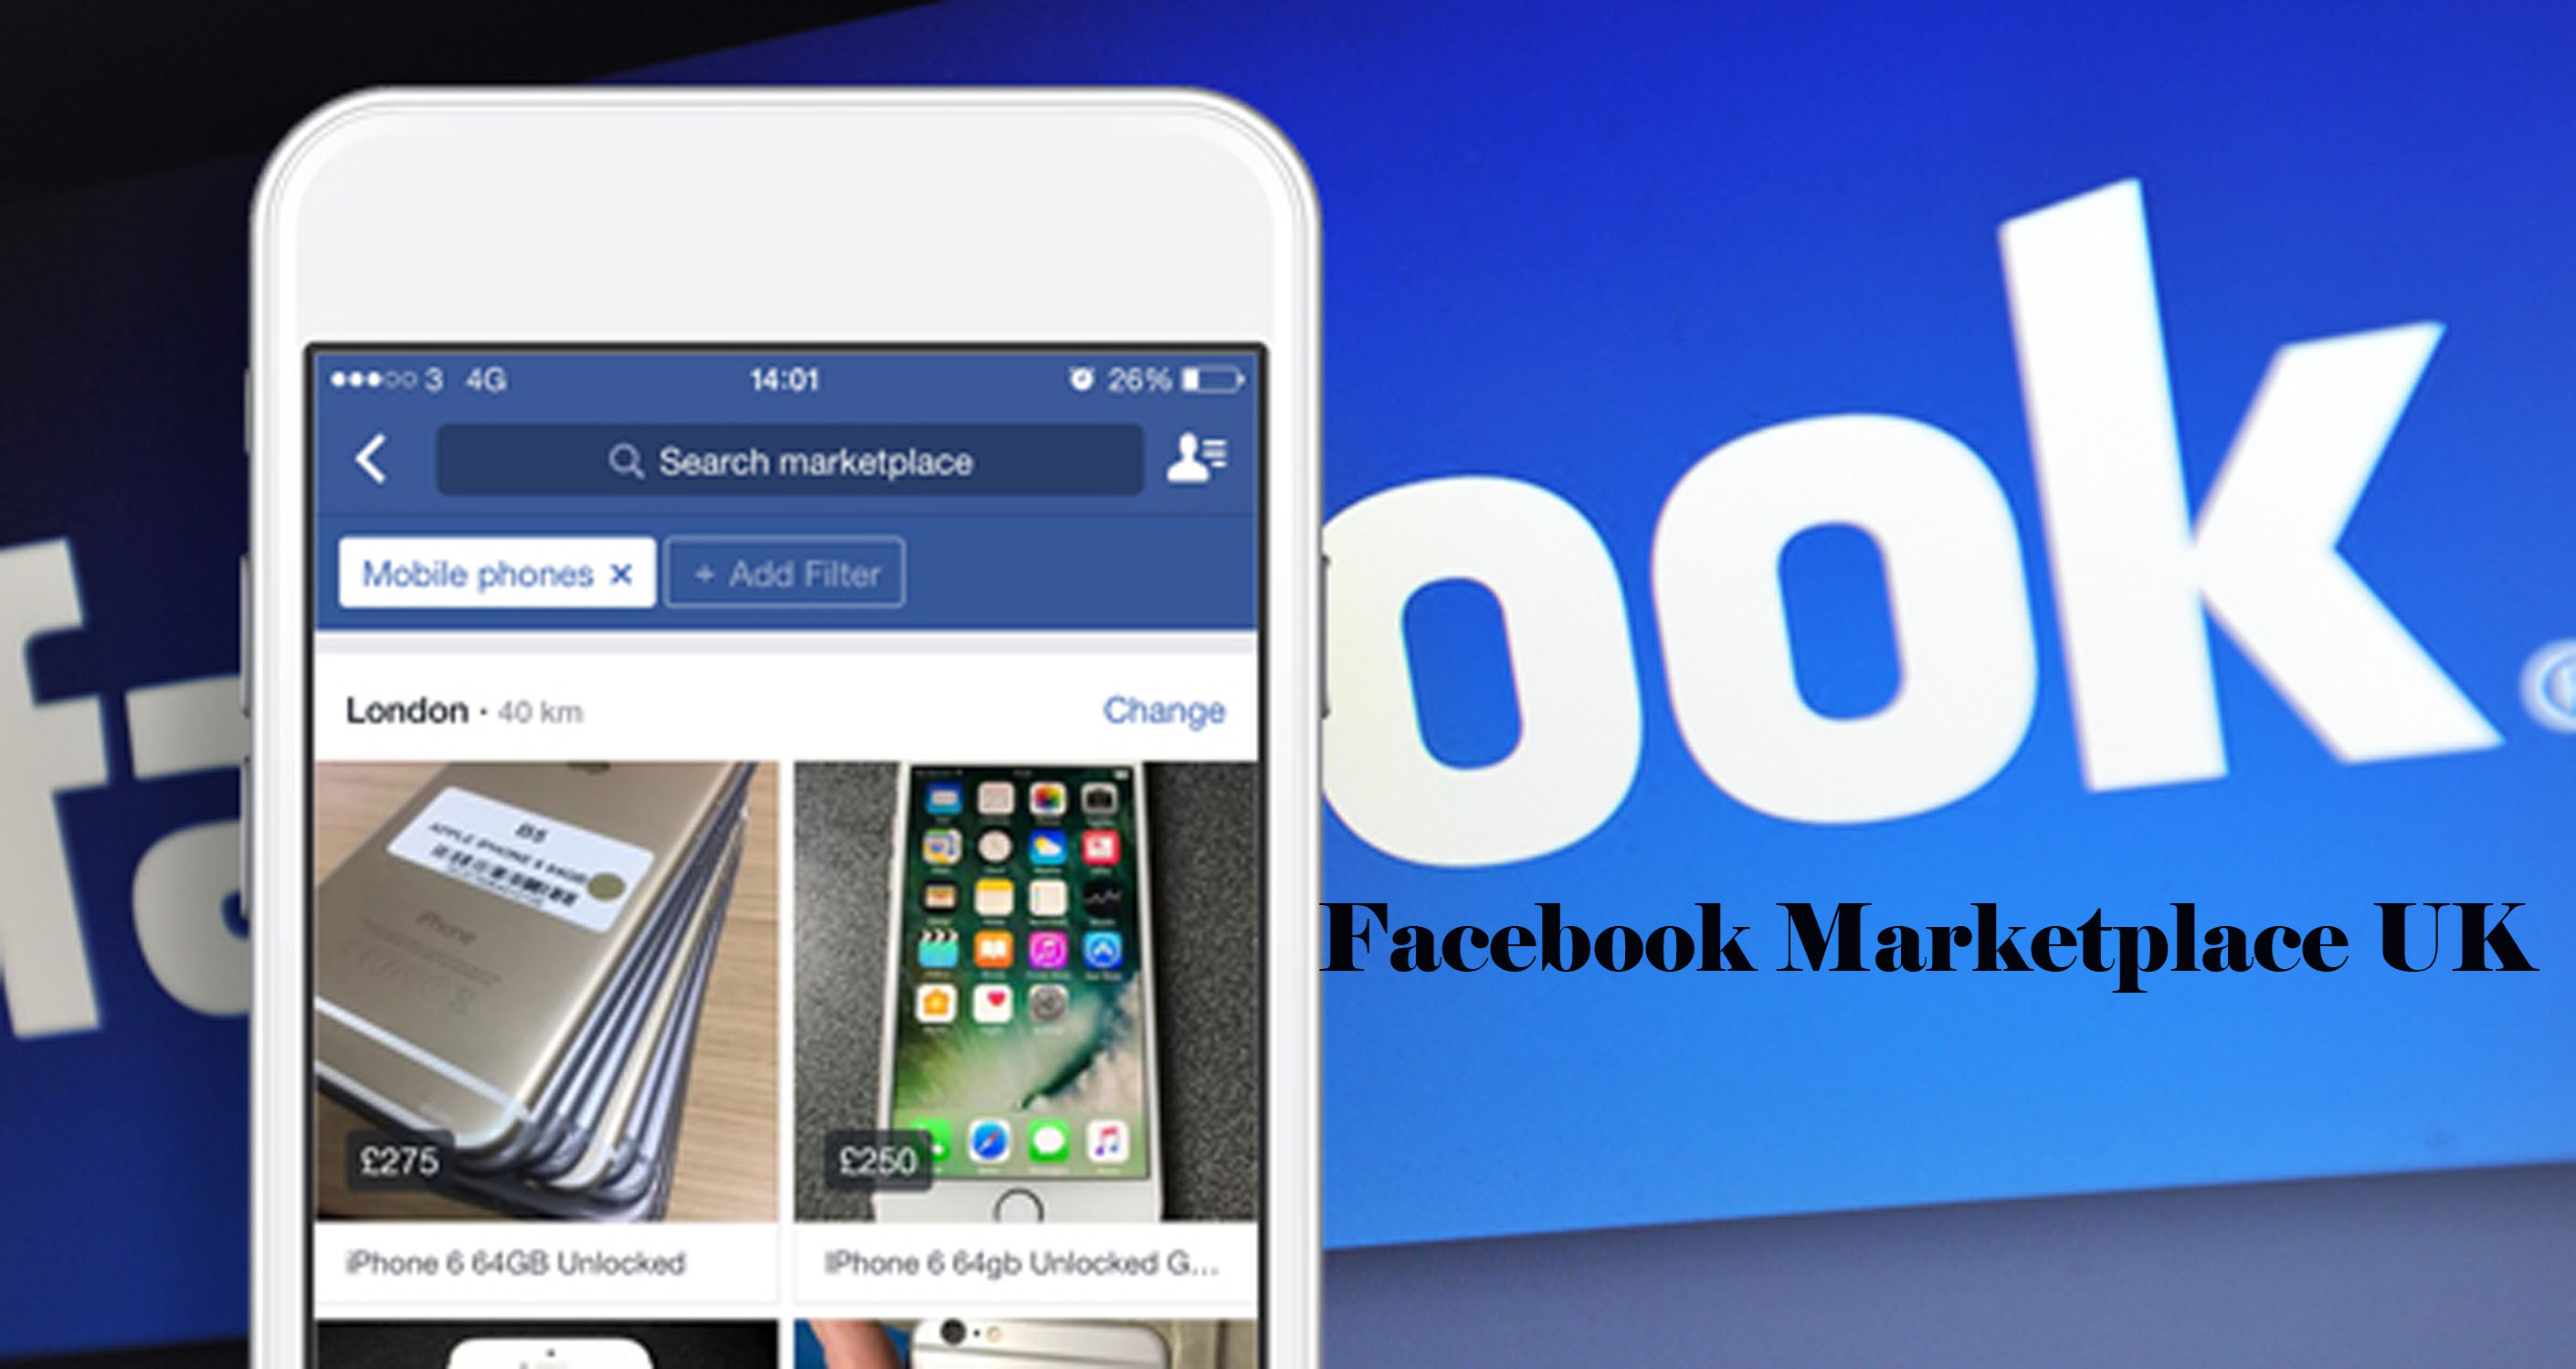 Facebook Marketplace UK – Facebook Trade Platform